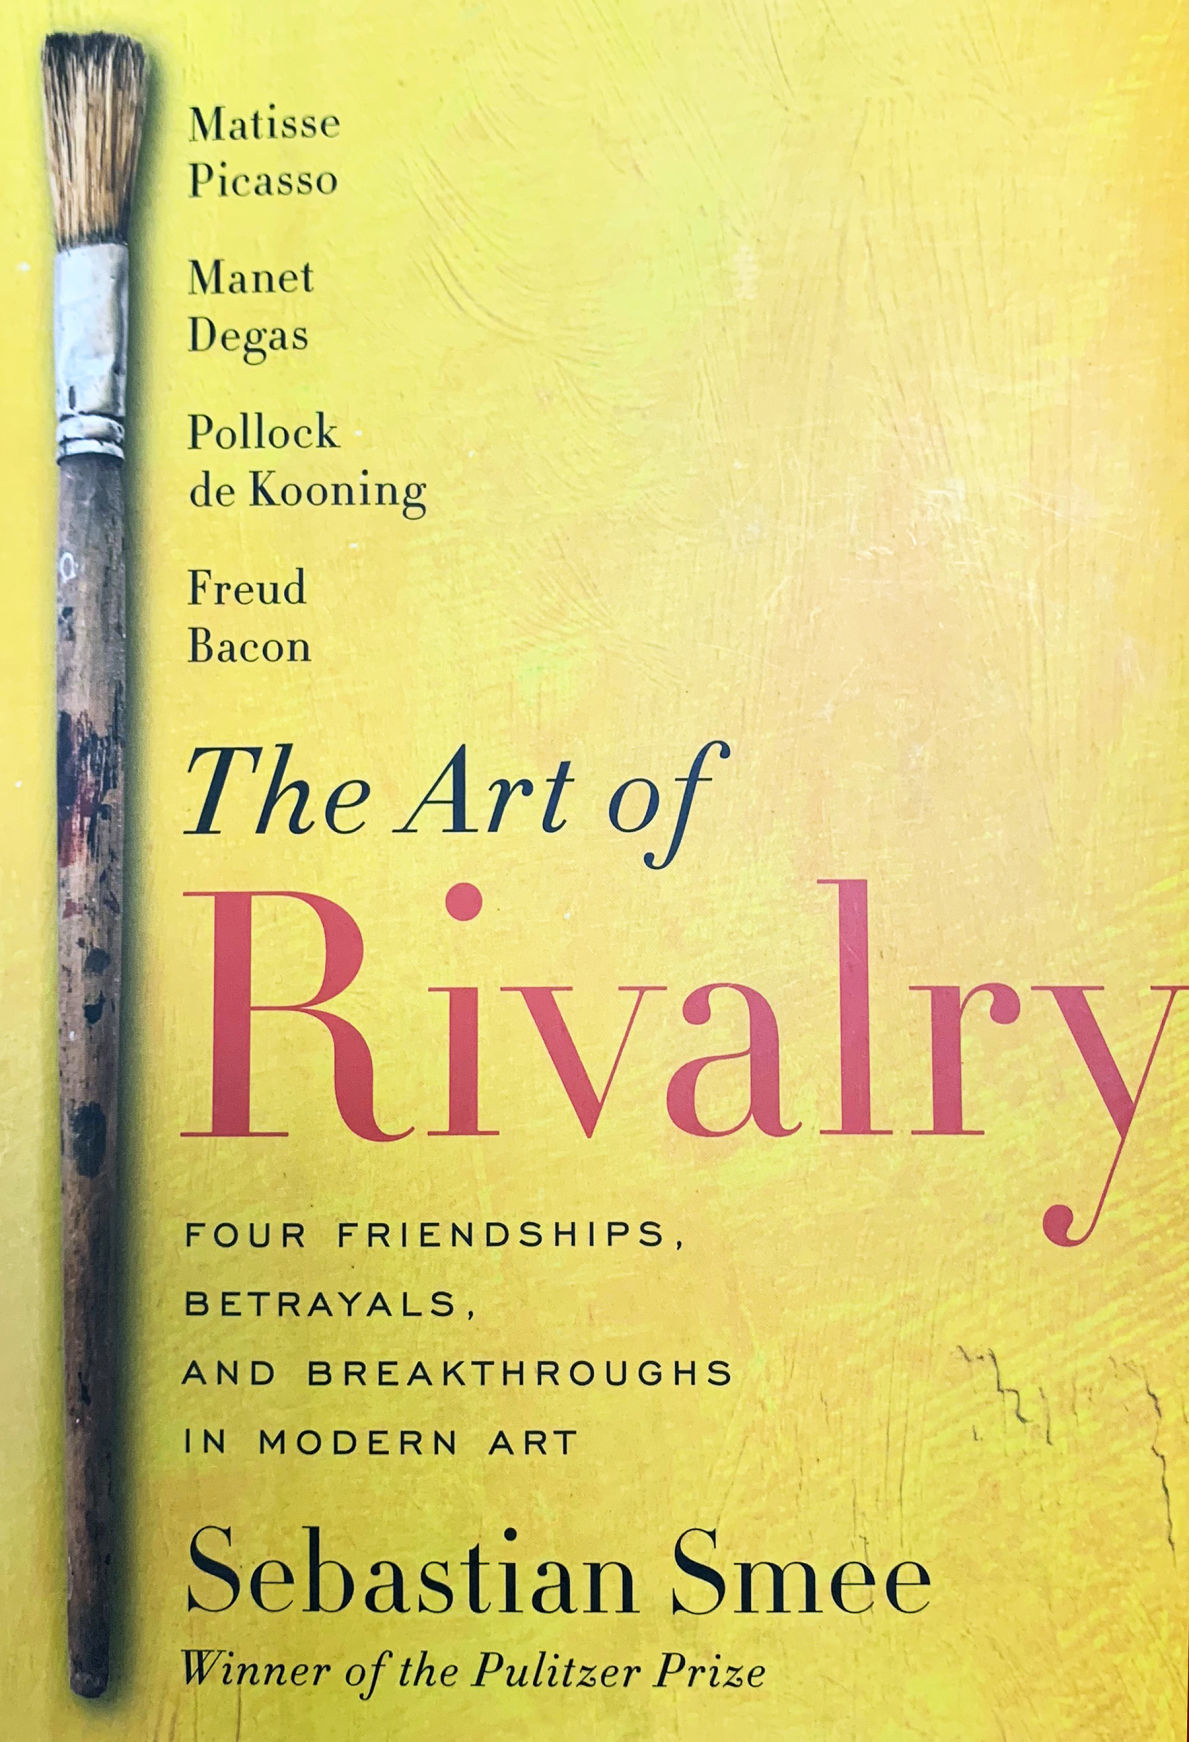 'The Art of Rivalry'